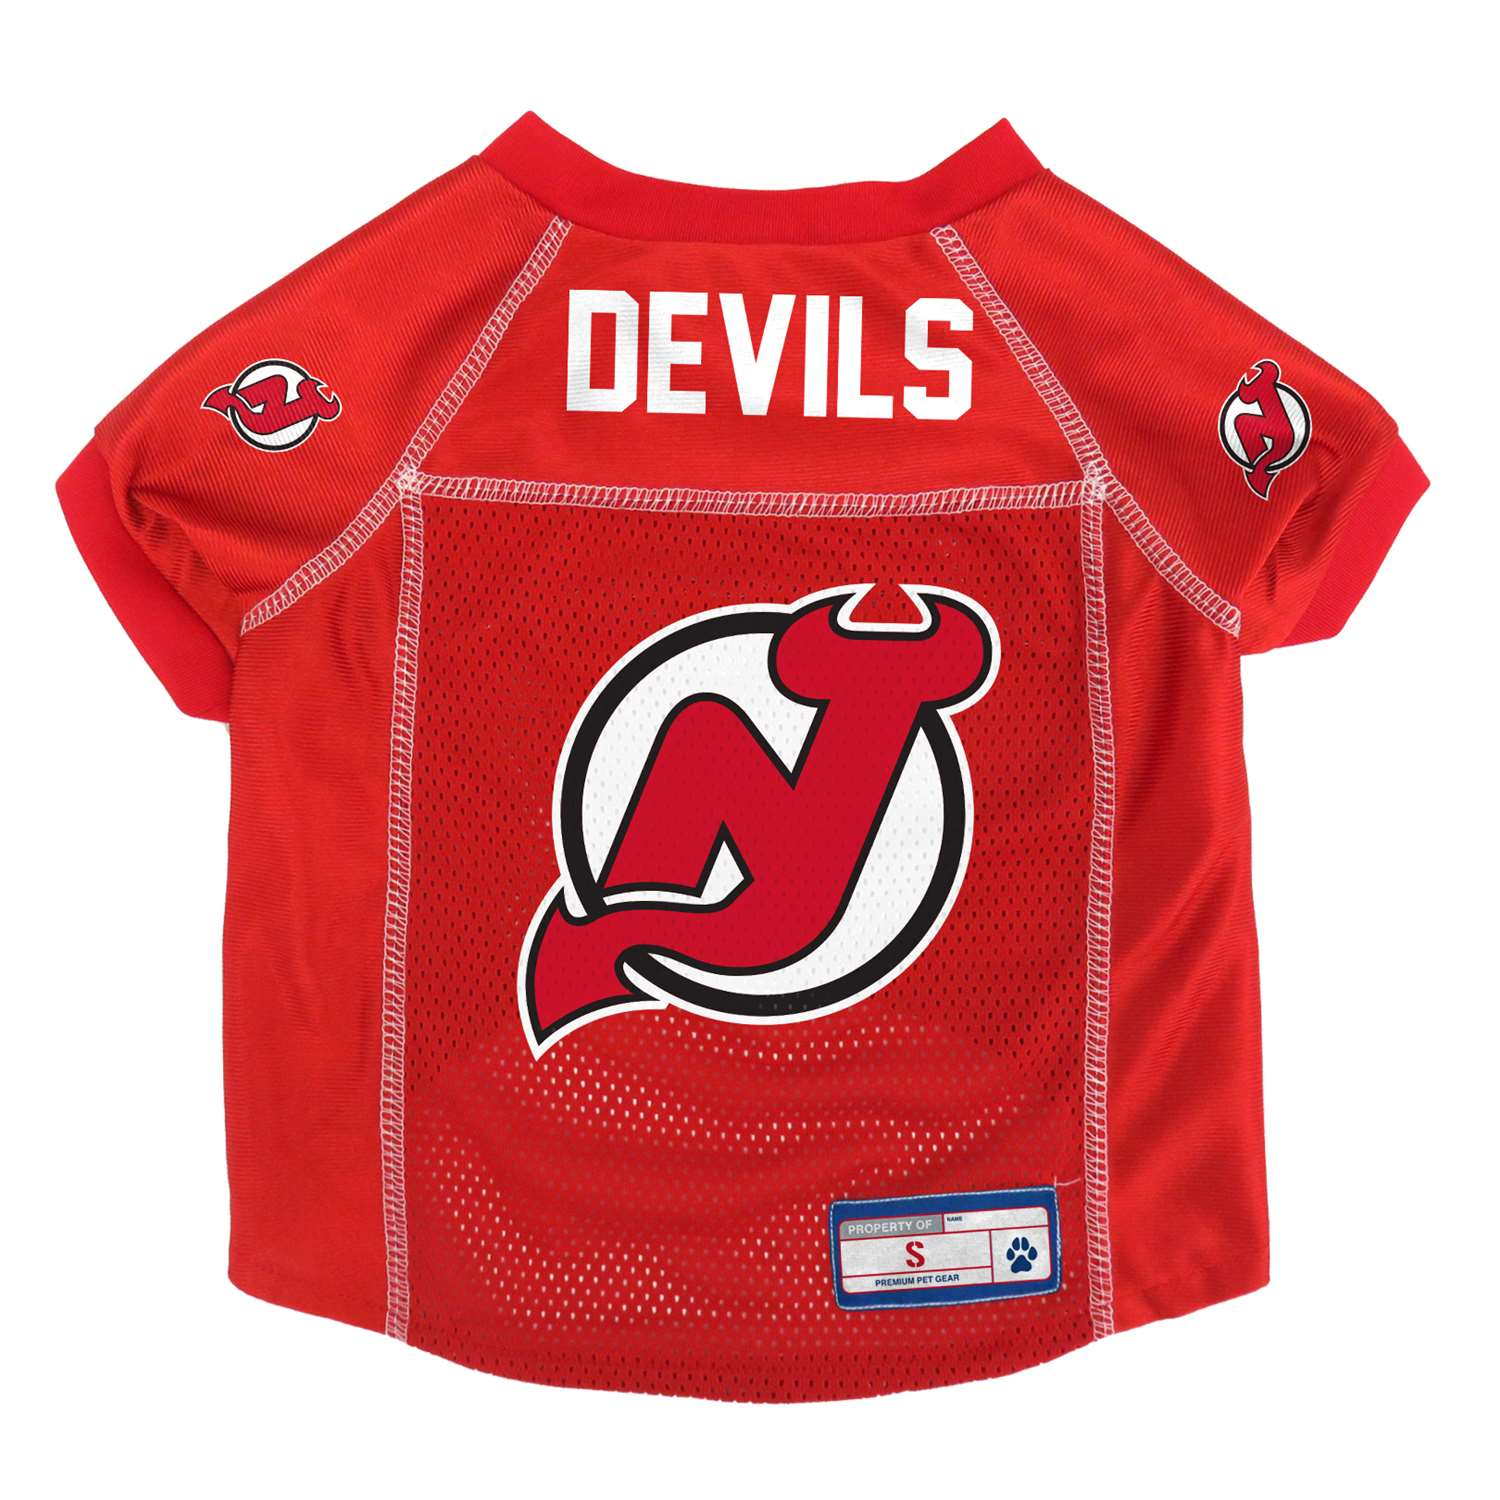 New Jersey Devils Pet Jersey - 520134-devl-s - Hockey Nhl Hockey New Jersey Devils Pet Fan Gear 520134-DEVL-S